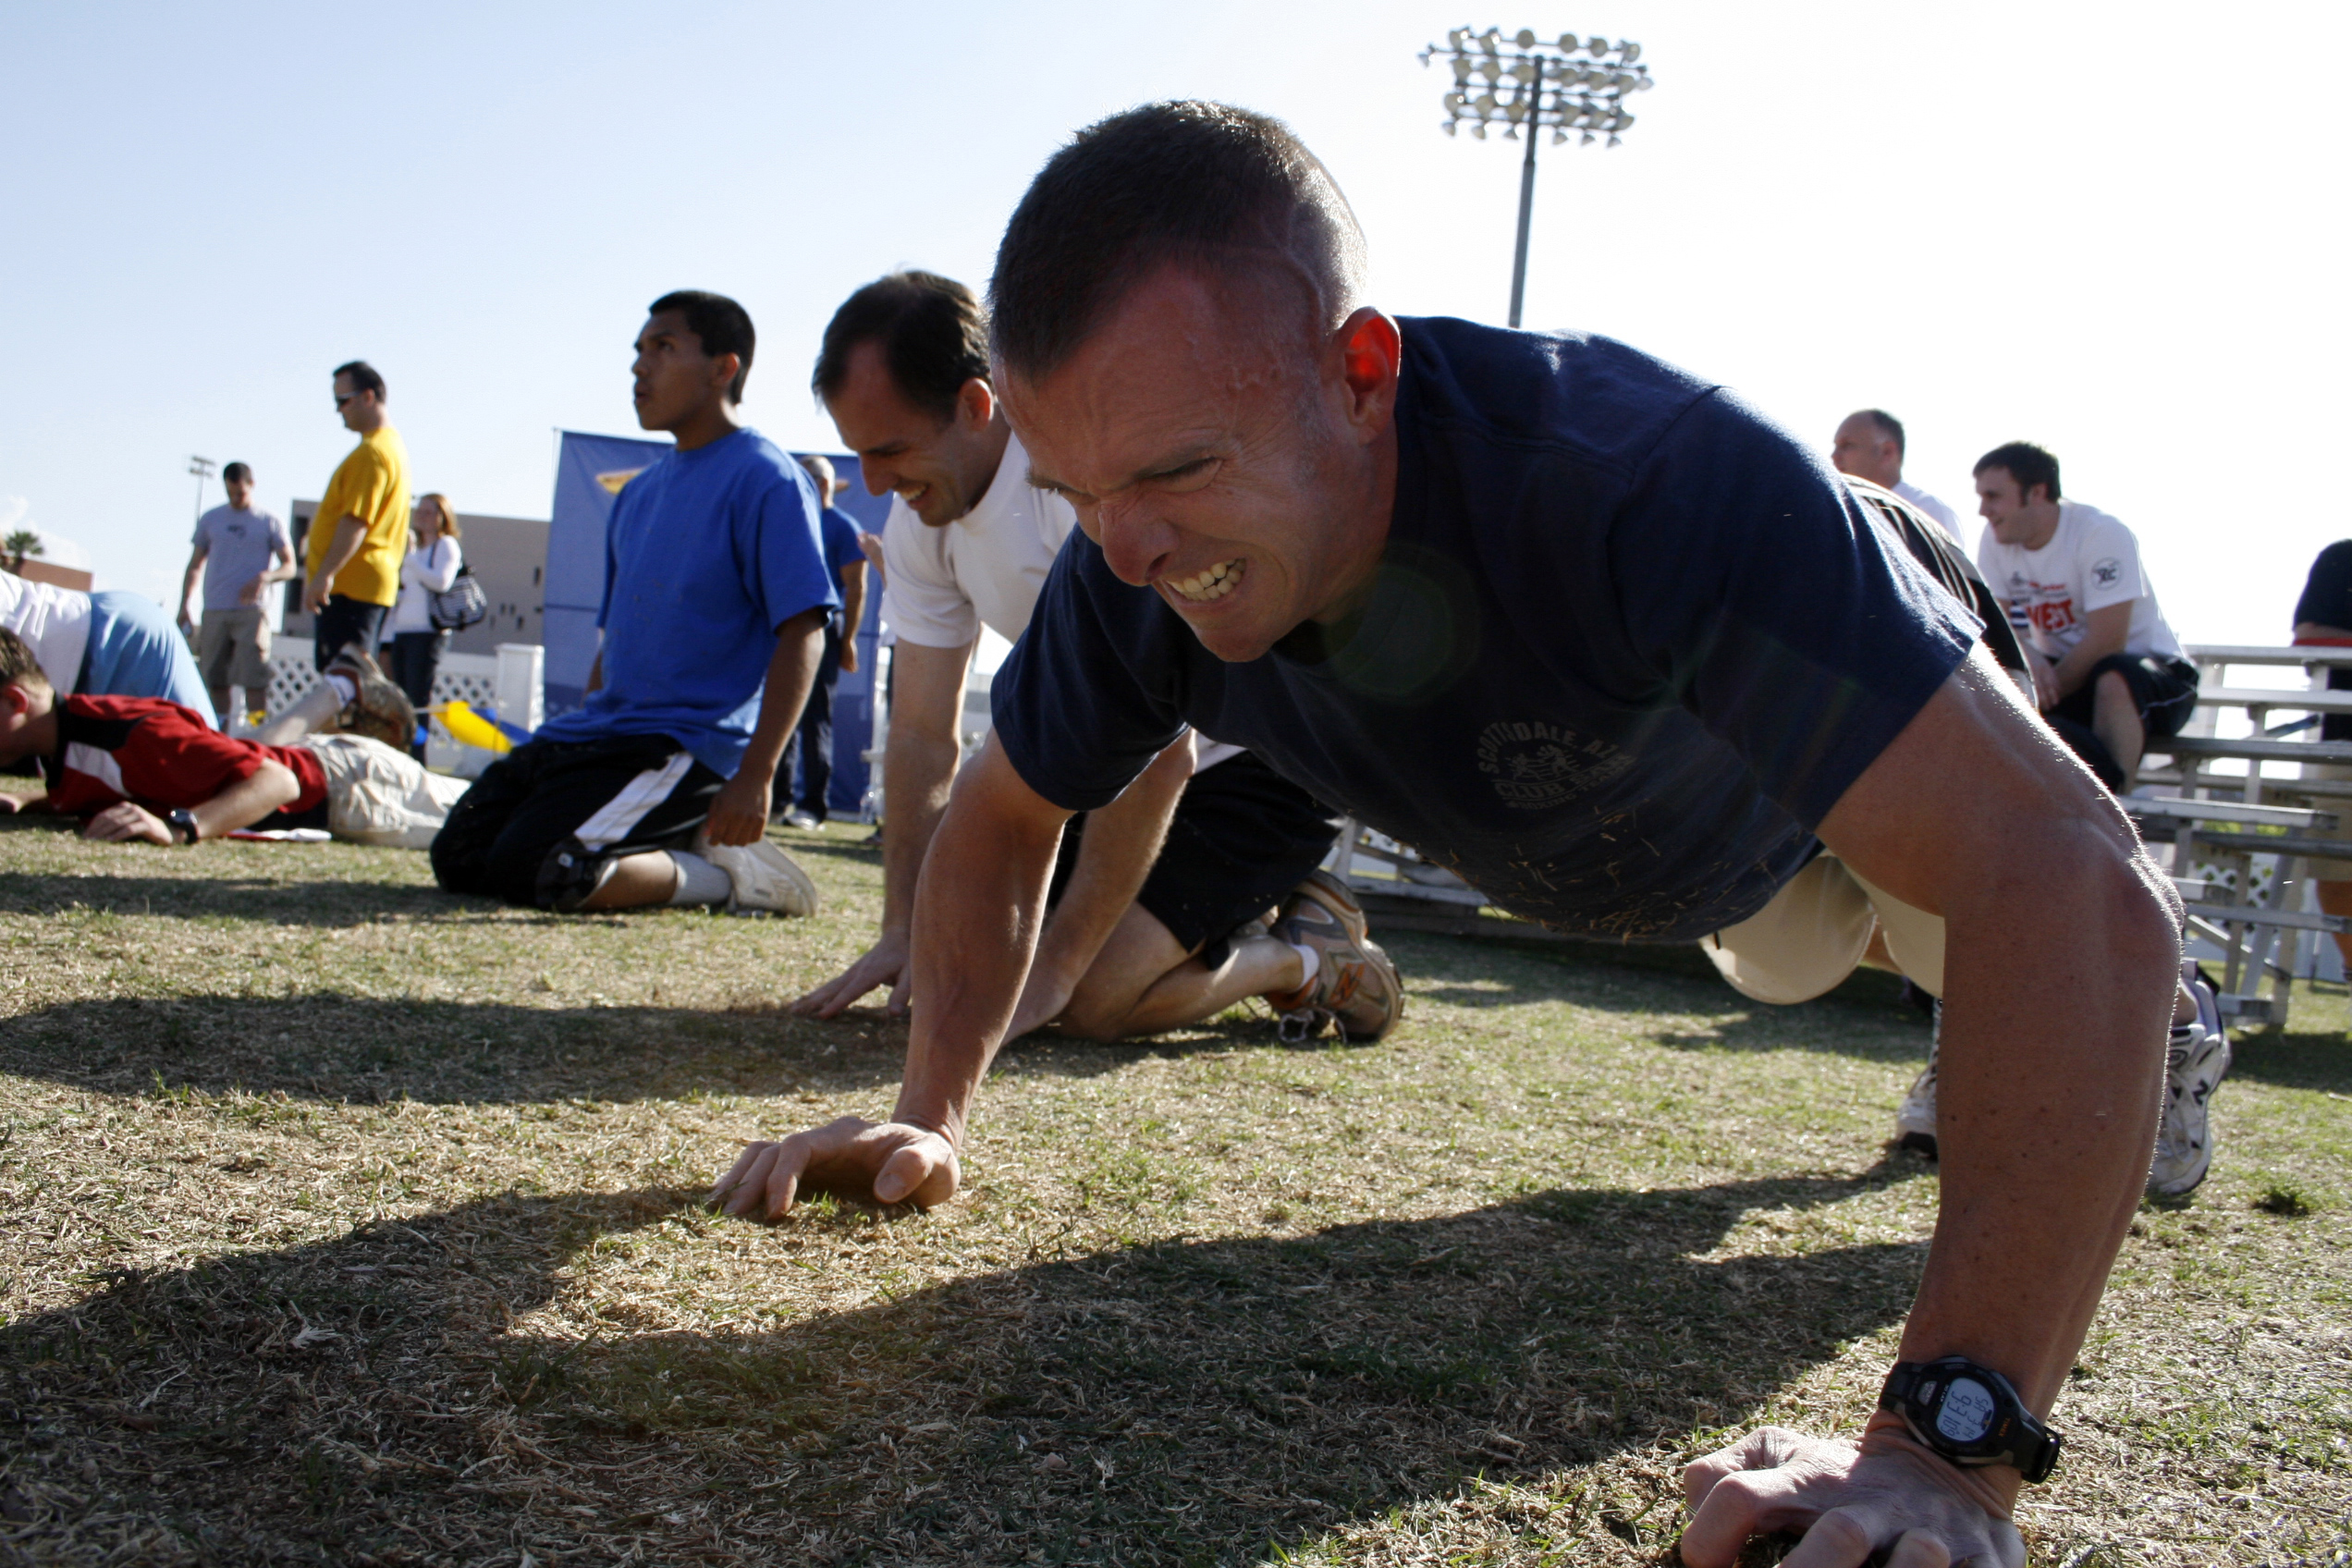 File:US Navy 090314-N-5366K-056 Athletes battle through two ...